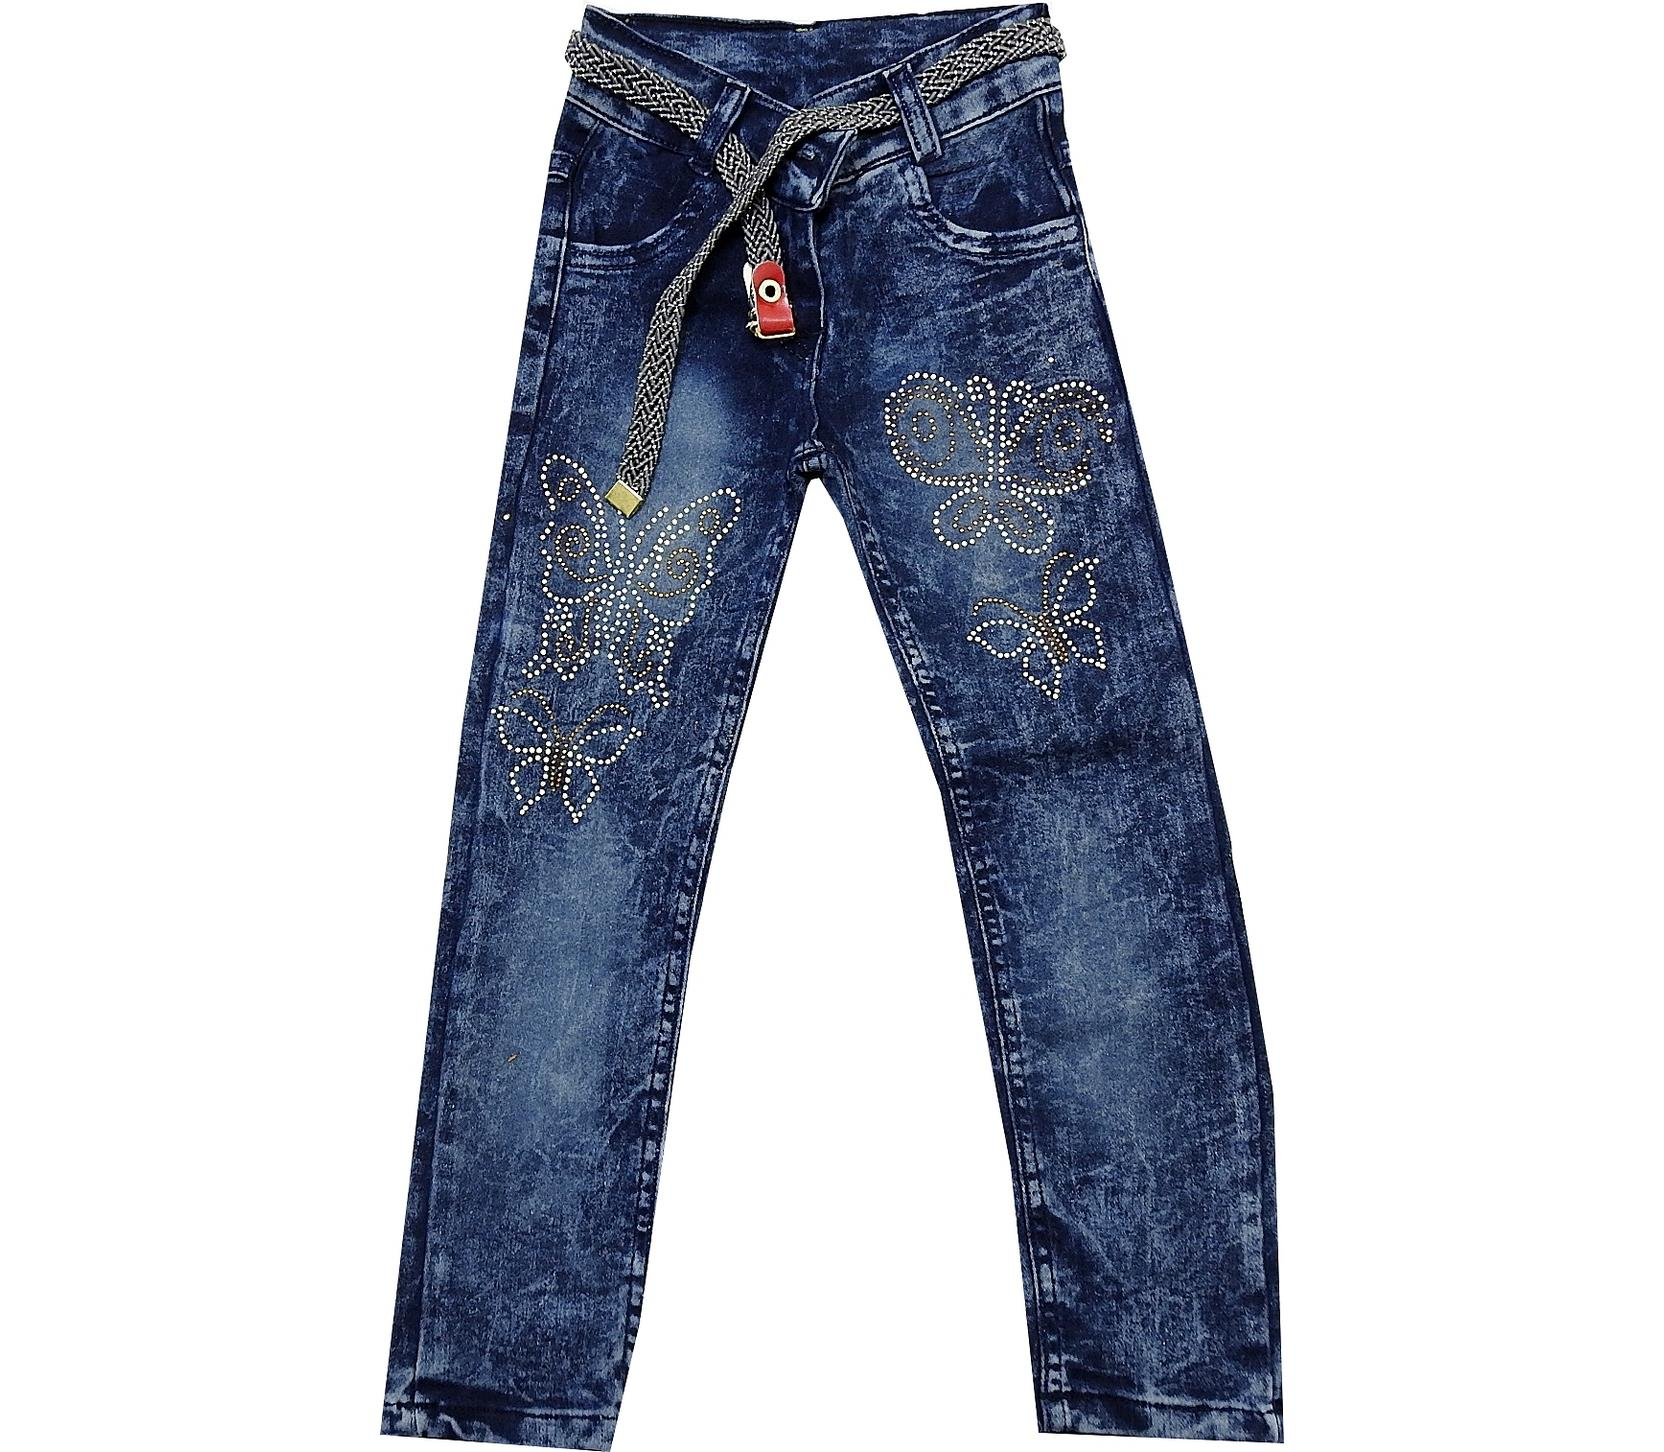 JEANS FOR BOY AND GIRL 3-4-5-6-7 AGE